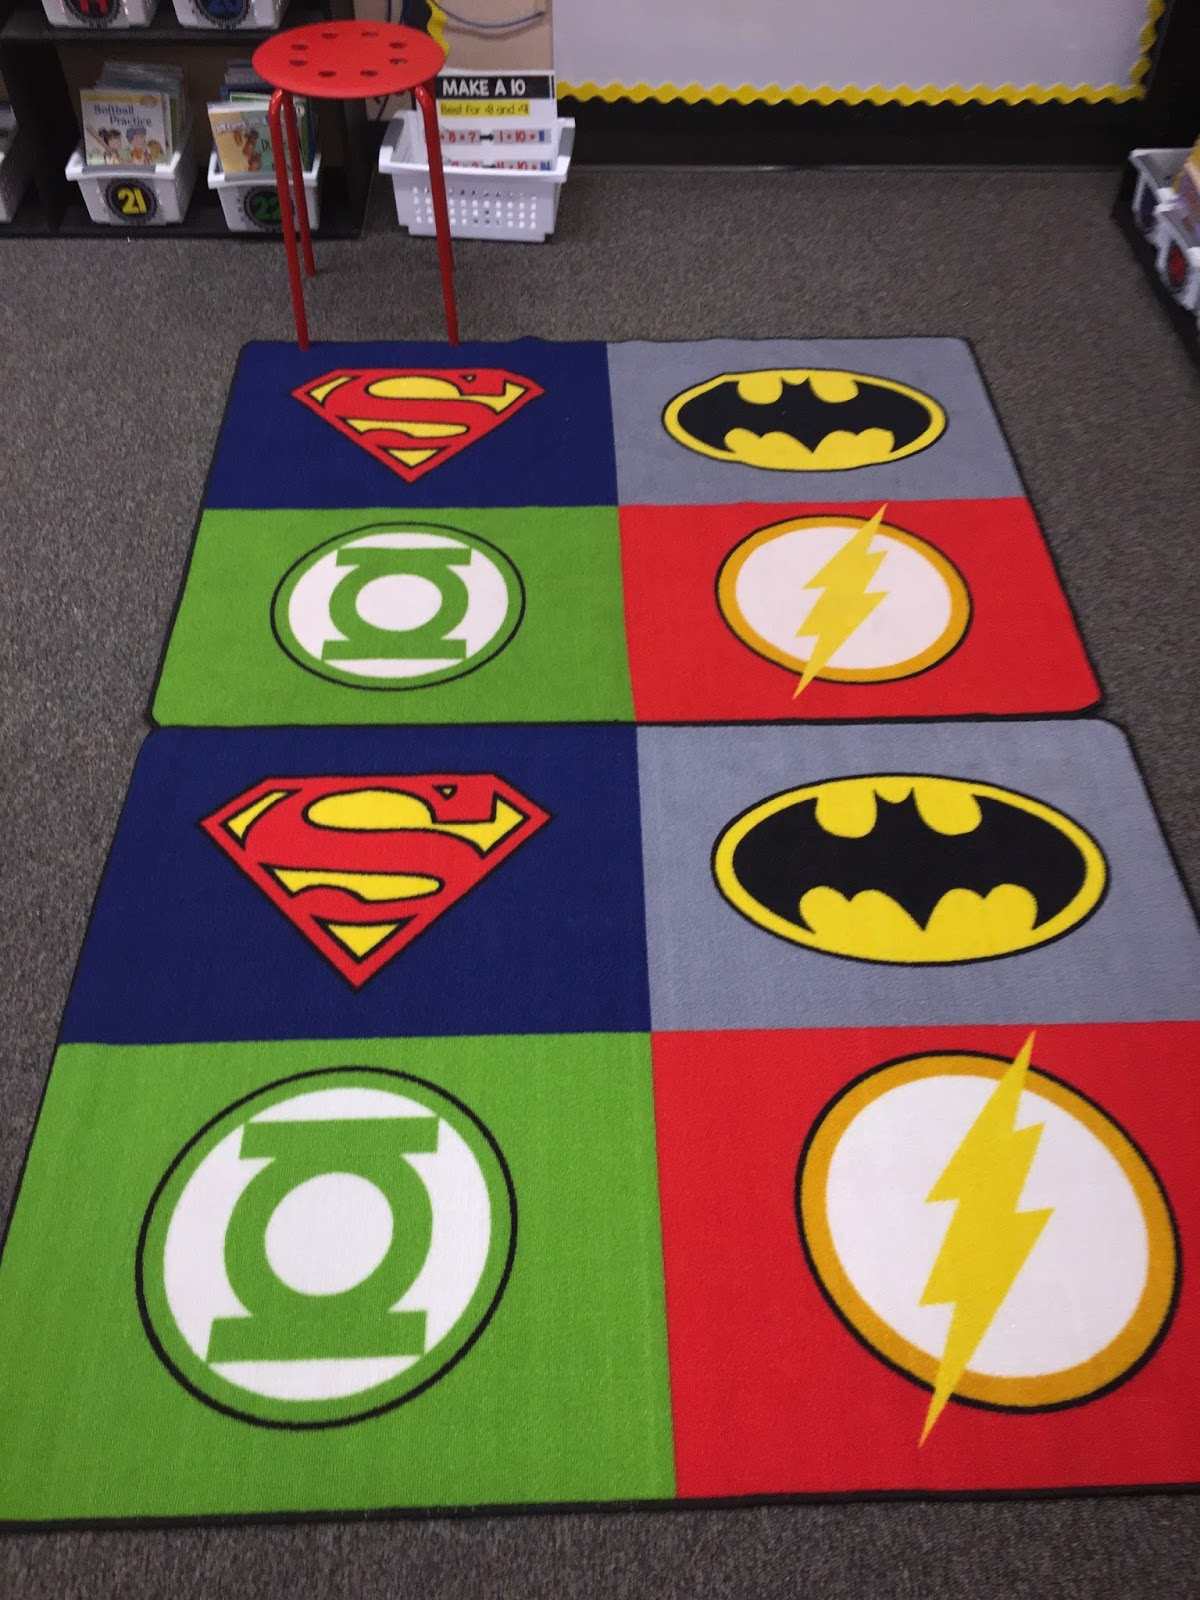 I Was Walking Through Target A Couple Of Nights Ago And The Super Hero Rug  Was On Clearance So I Purchased A Second One To Make My Meeting Space  Bigger!